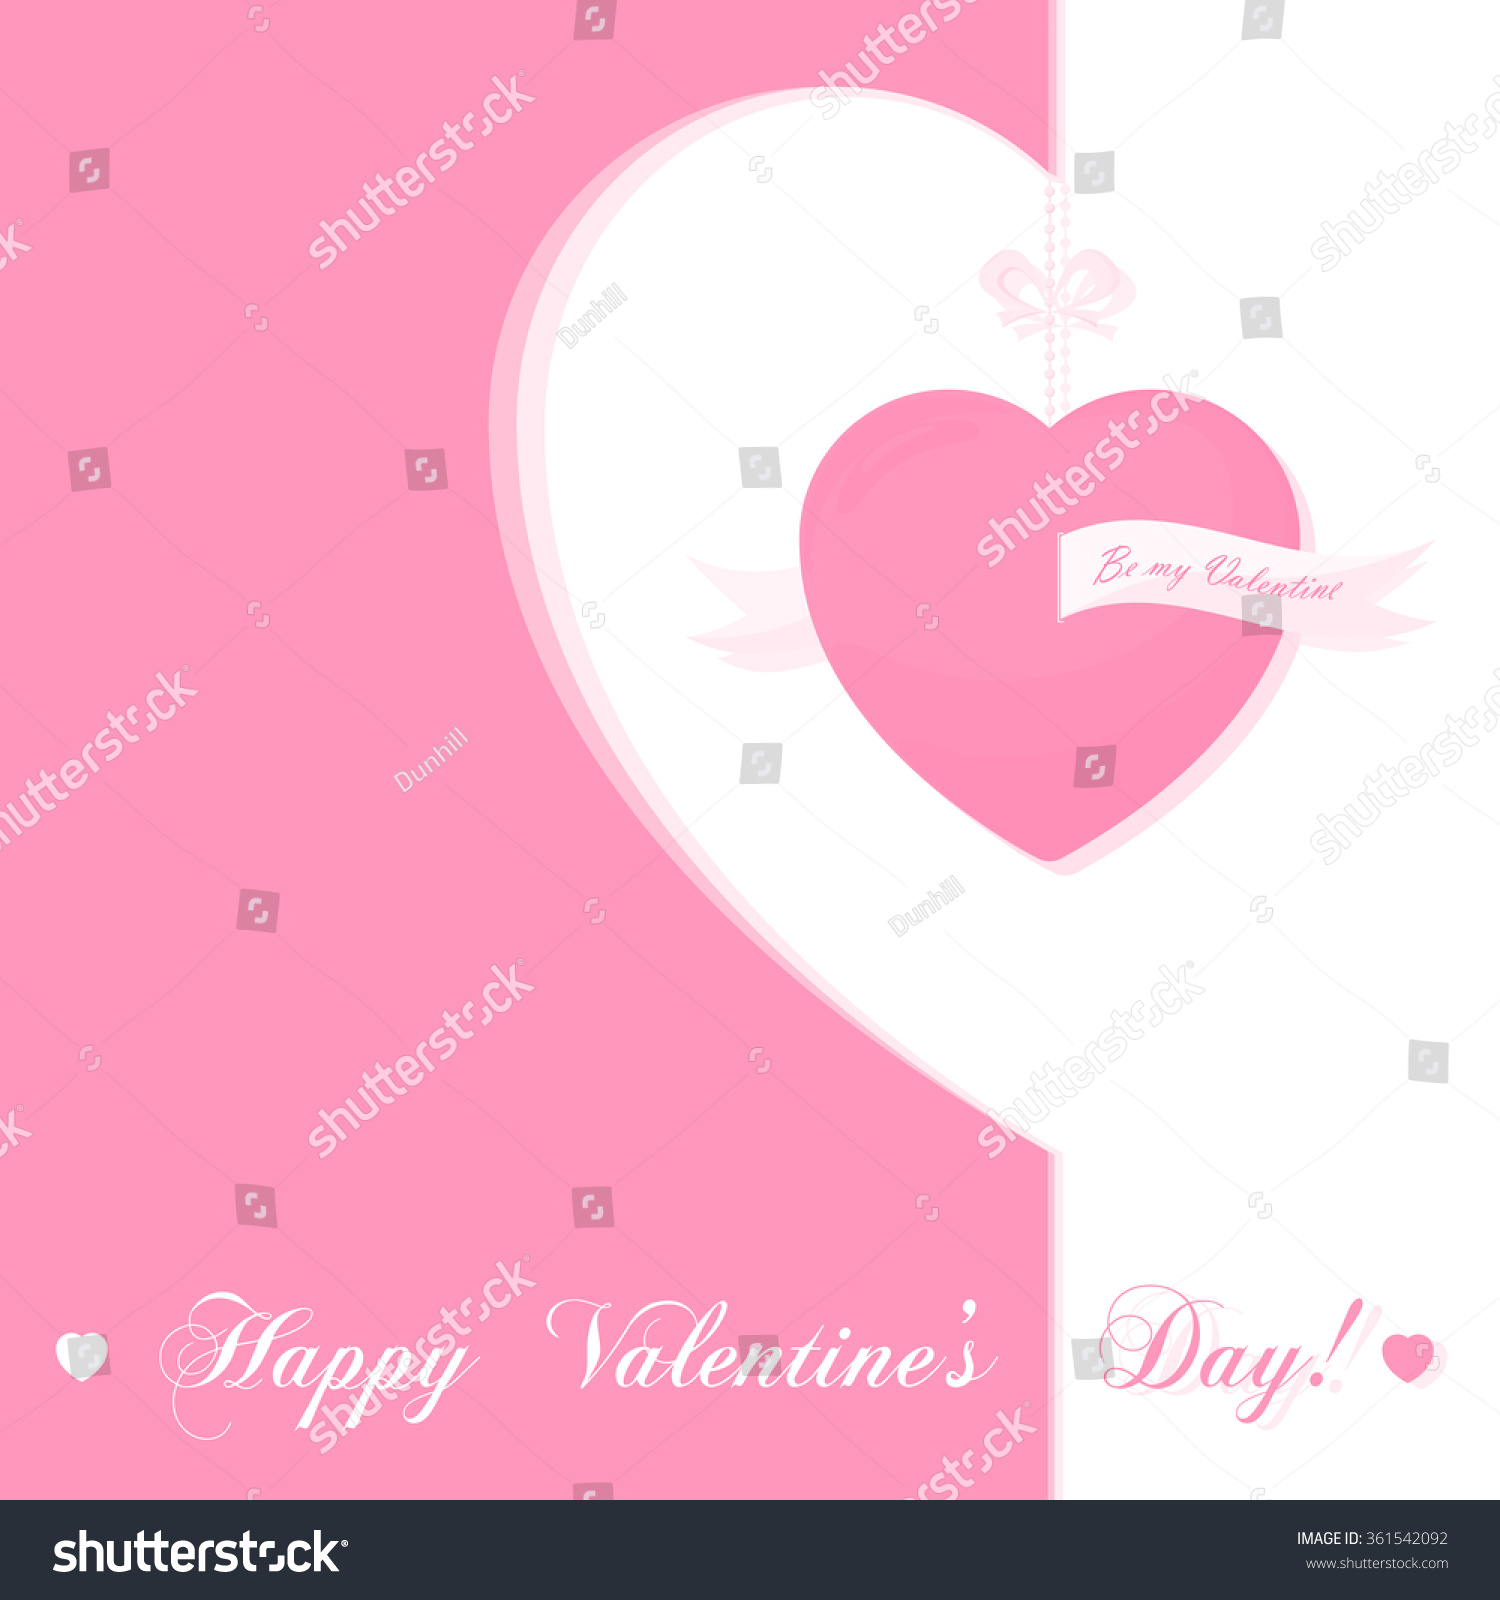 banner for design posters or invitations on valentines day with cutest symbol hearts and title